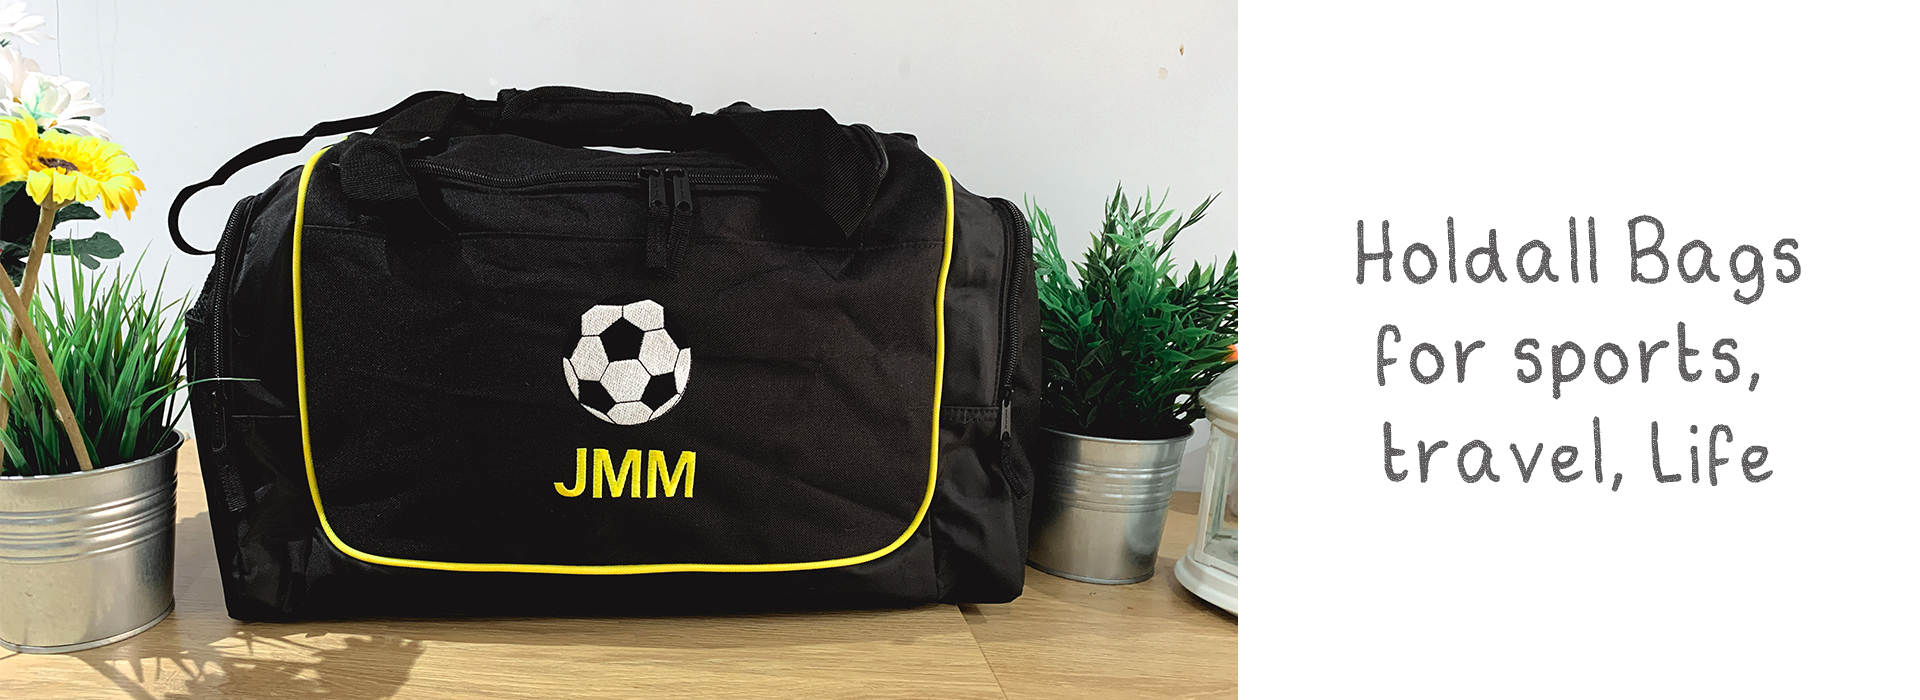 personalised bags, holdall bags, kit bags, travel bags